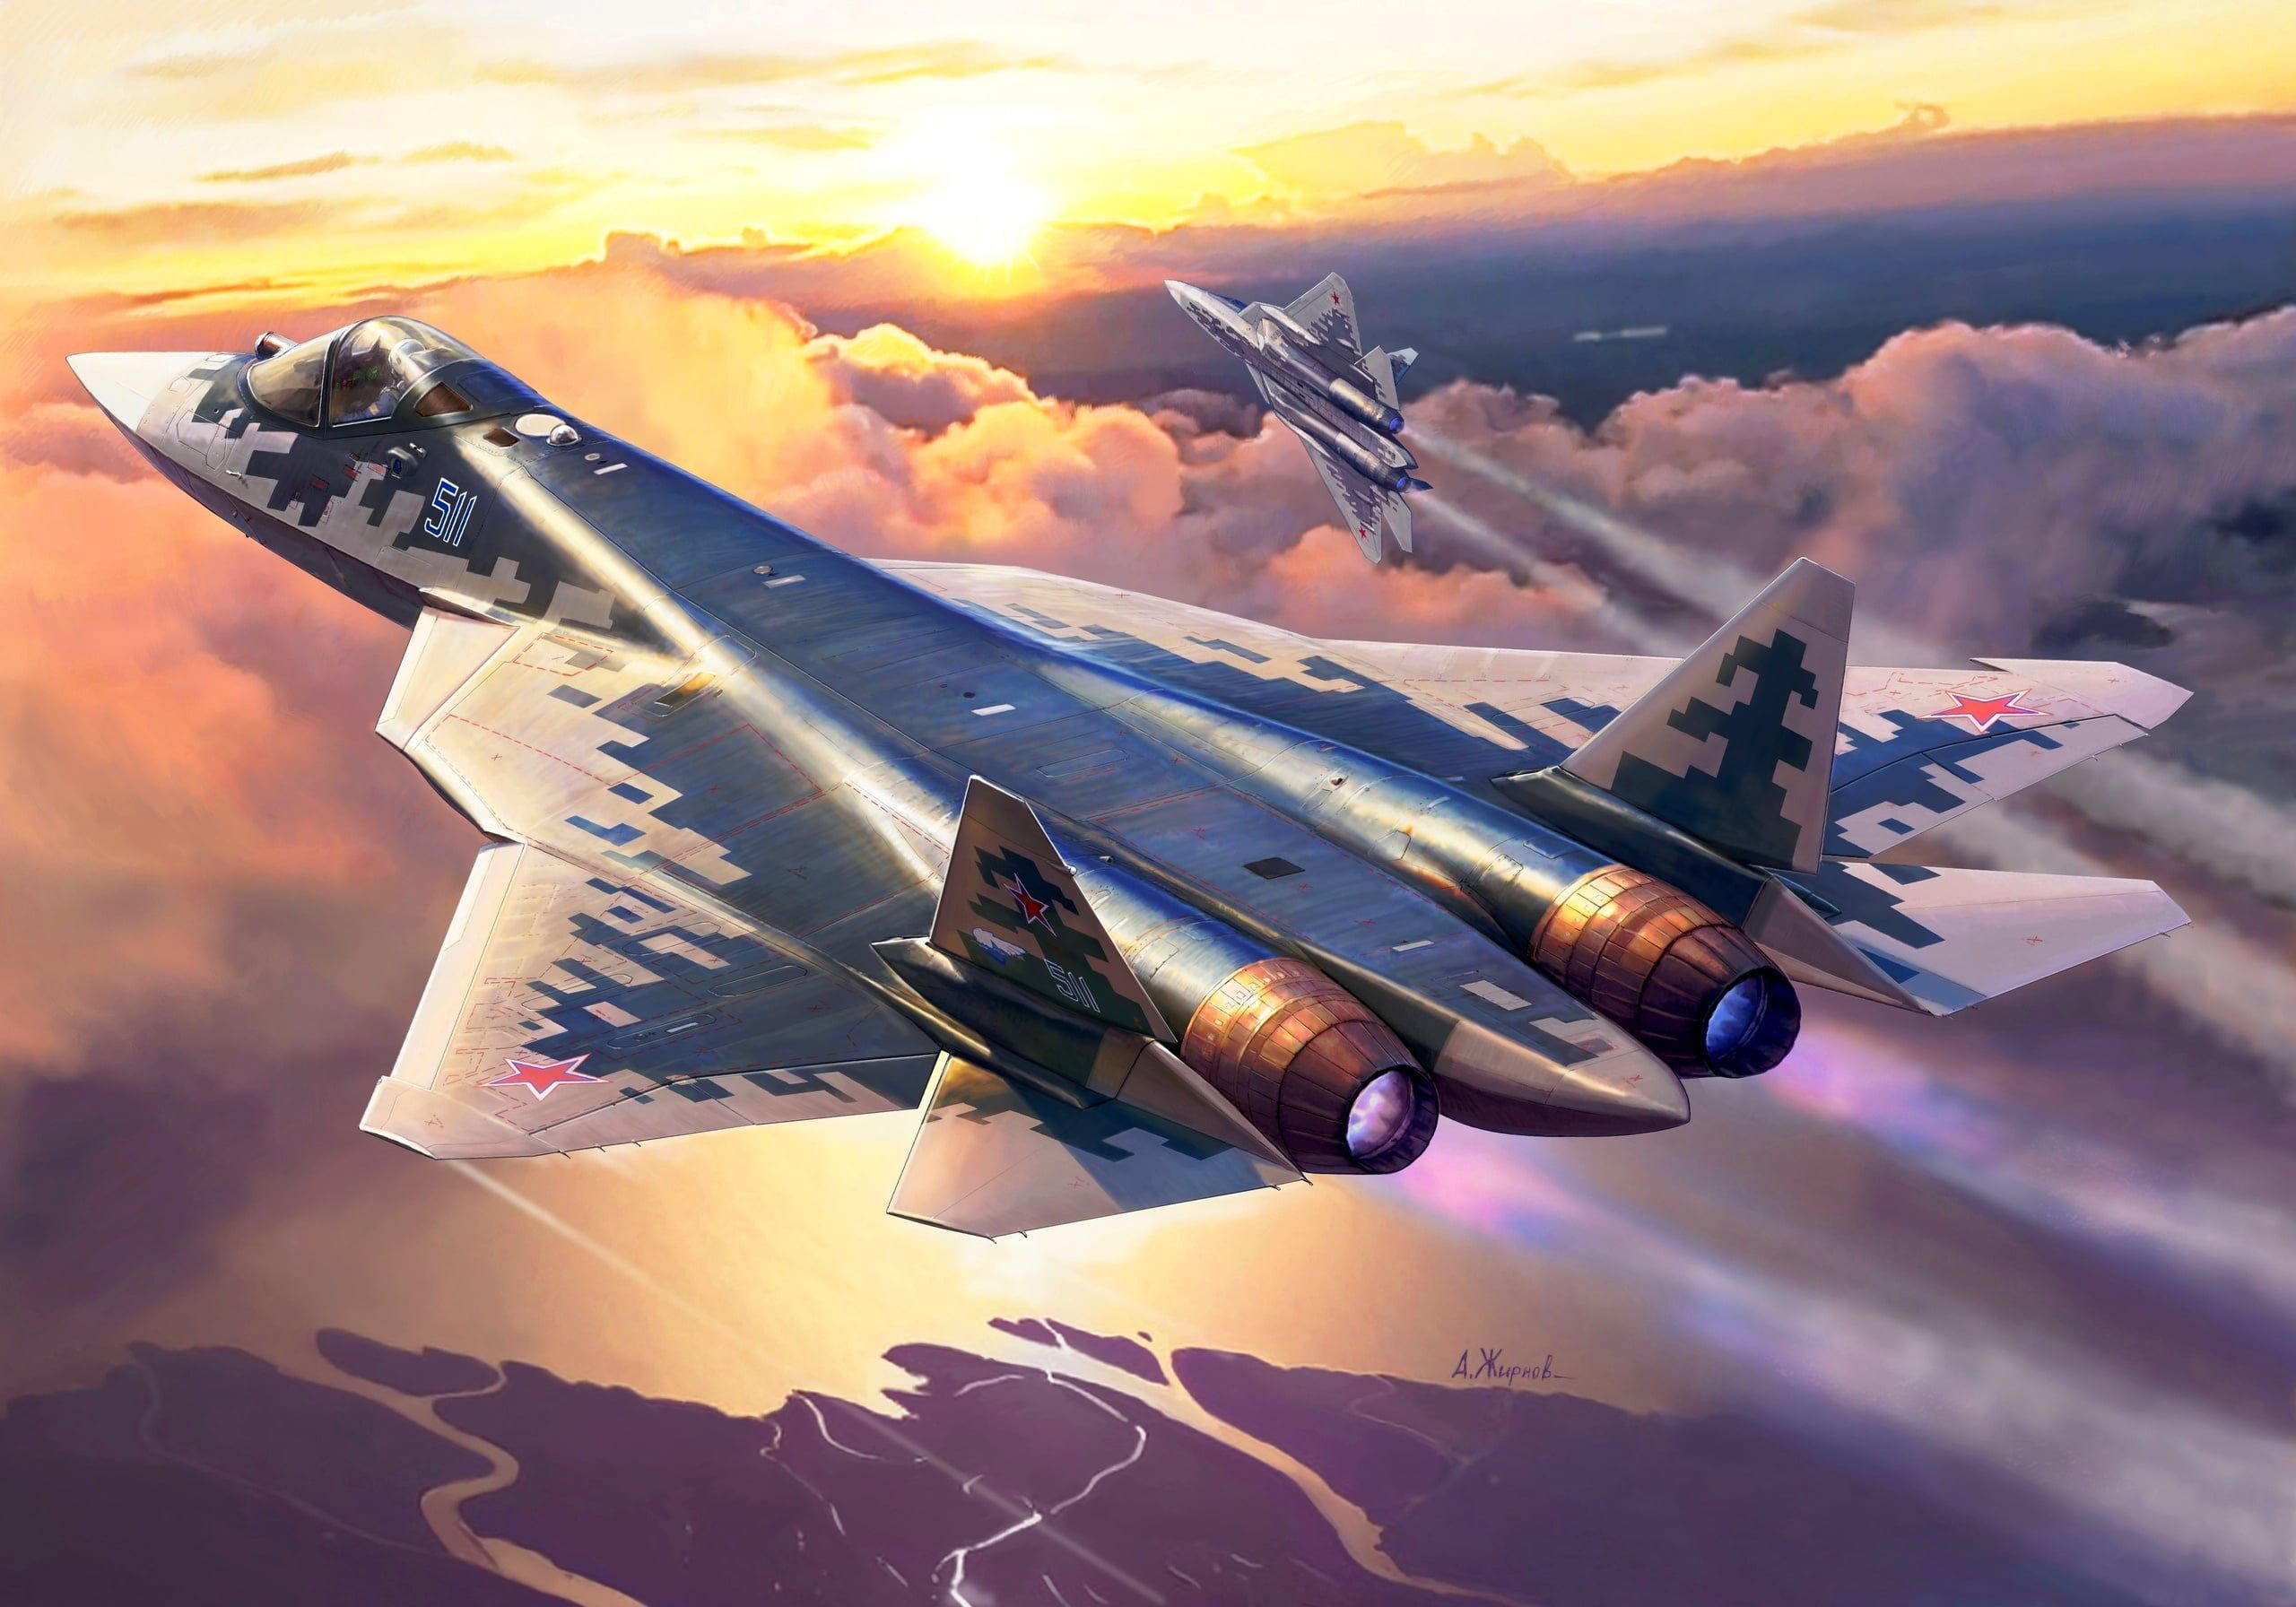 Dawn Pair Flight Russia Videoconferencing Russia The Fifth Generation Fighter Su 57 2k Wallpaper Hdwallpaper Deskt Fighter Jets Fighter Fighter Planes Good aircrafts military hd wallpaper